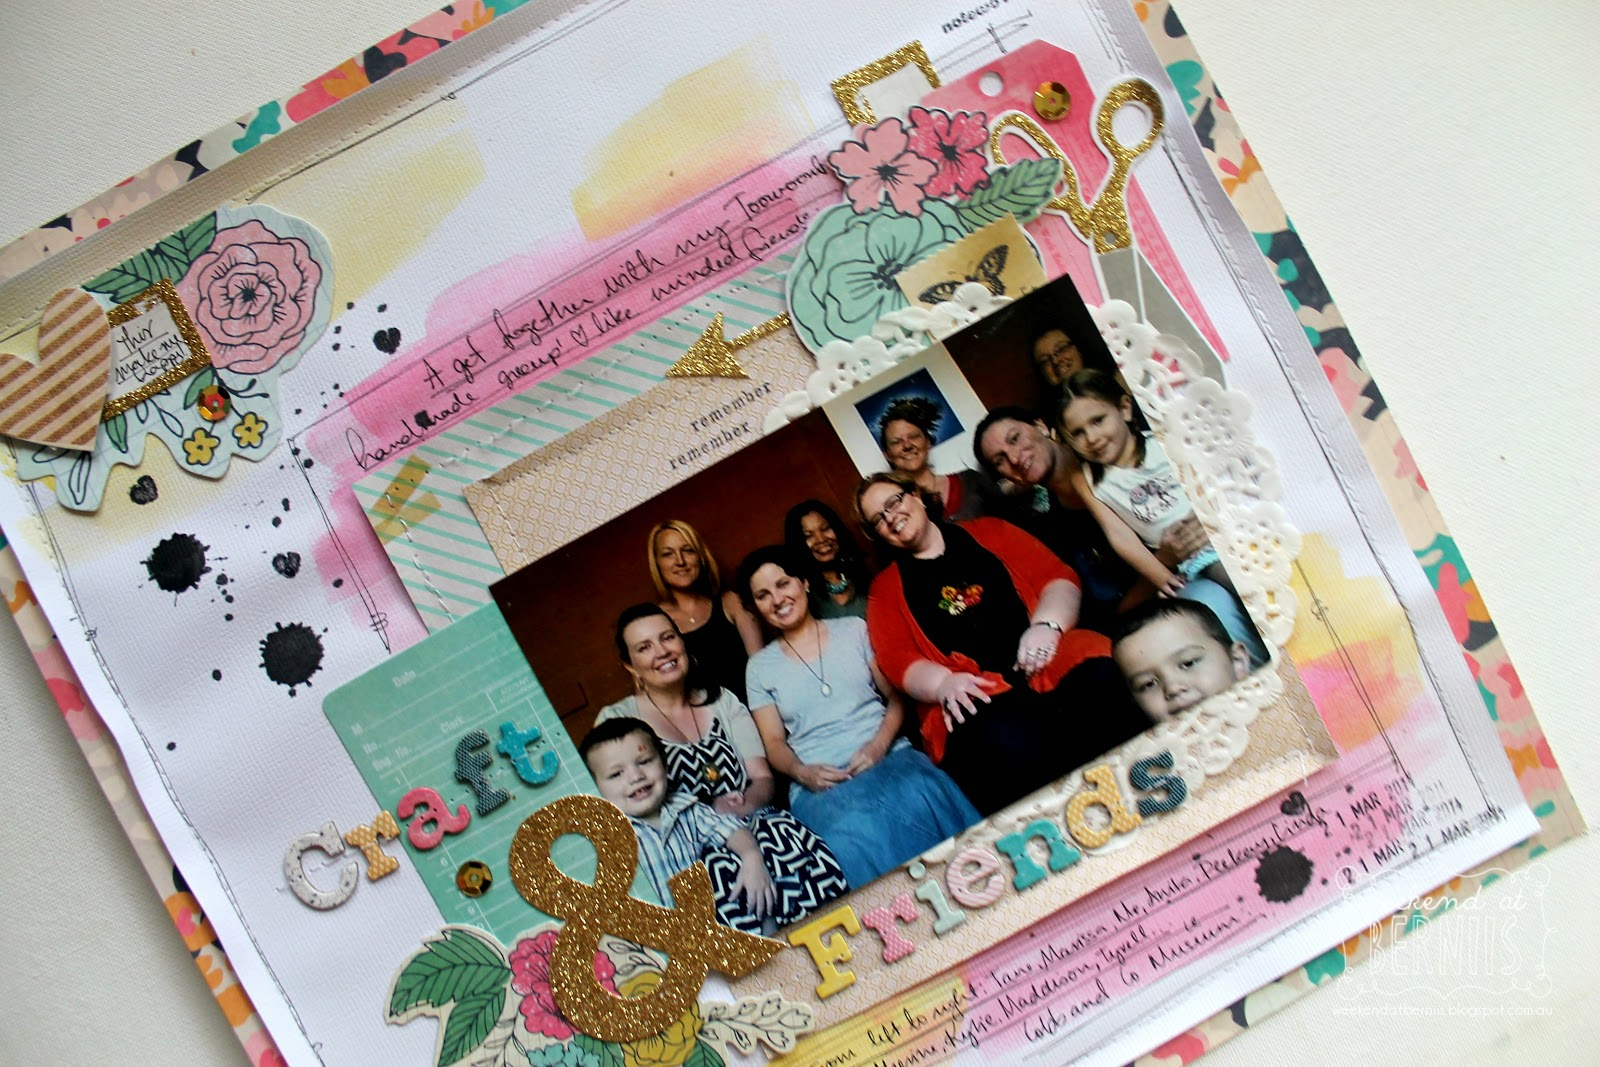 Craft and Friends layout by Bernii Miller using Craft Market collection by Crate Paper.